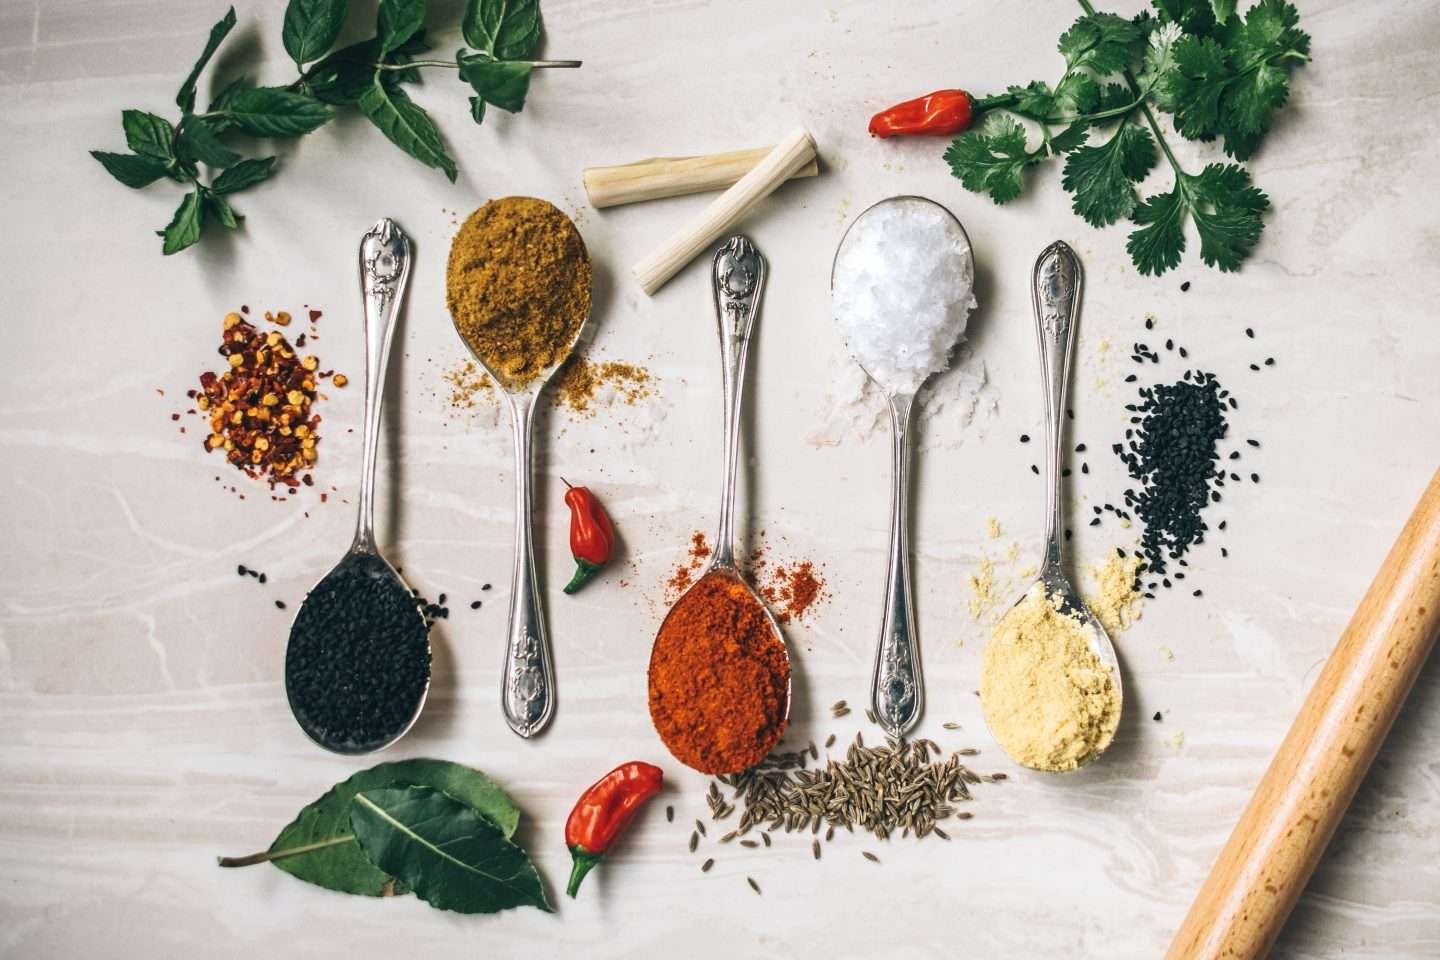 Top Vegan and Vegetarian Spice